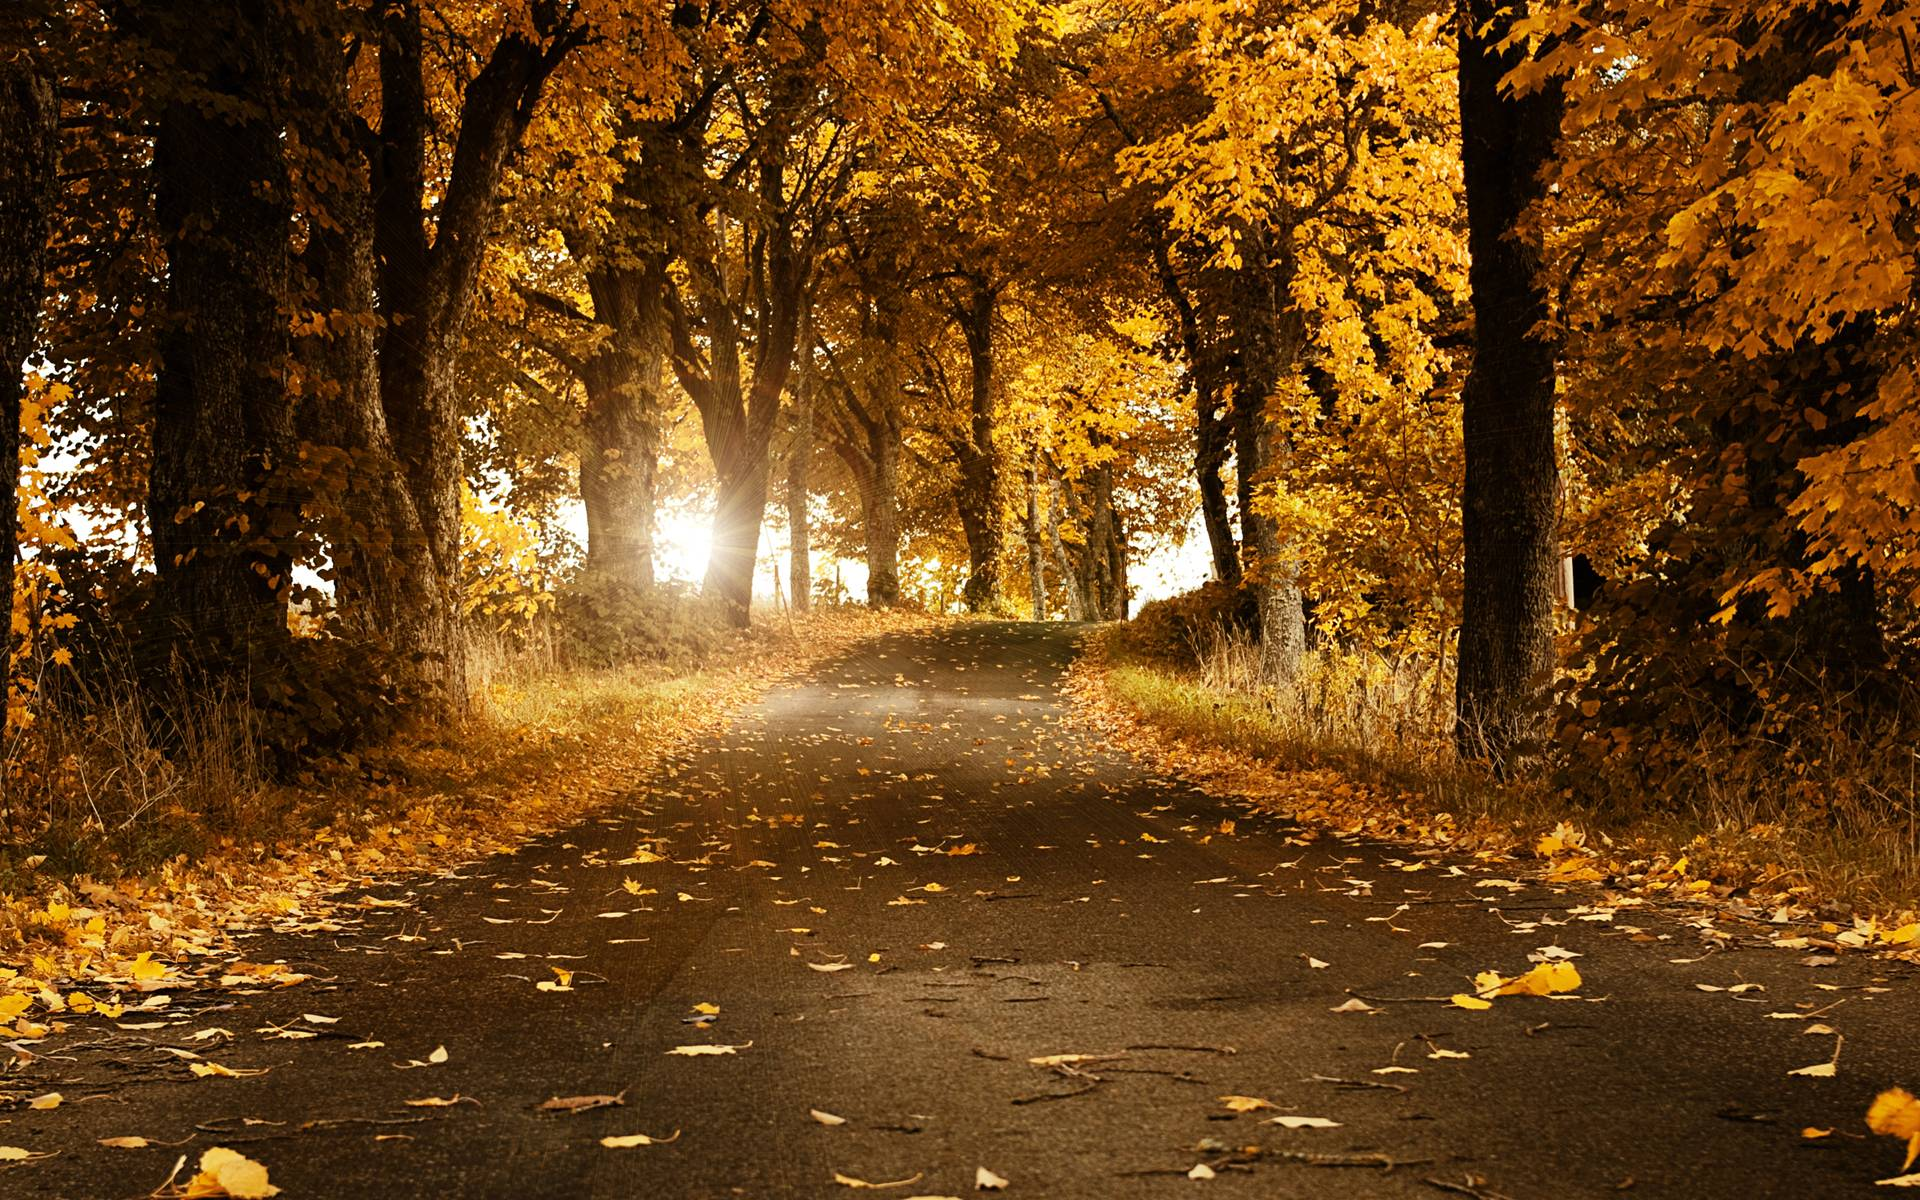 Forest Road Wallpaper | Download Wallpapers